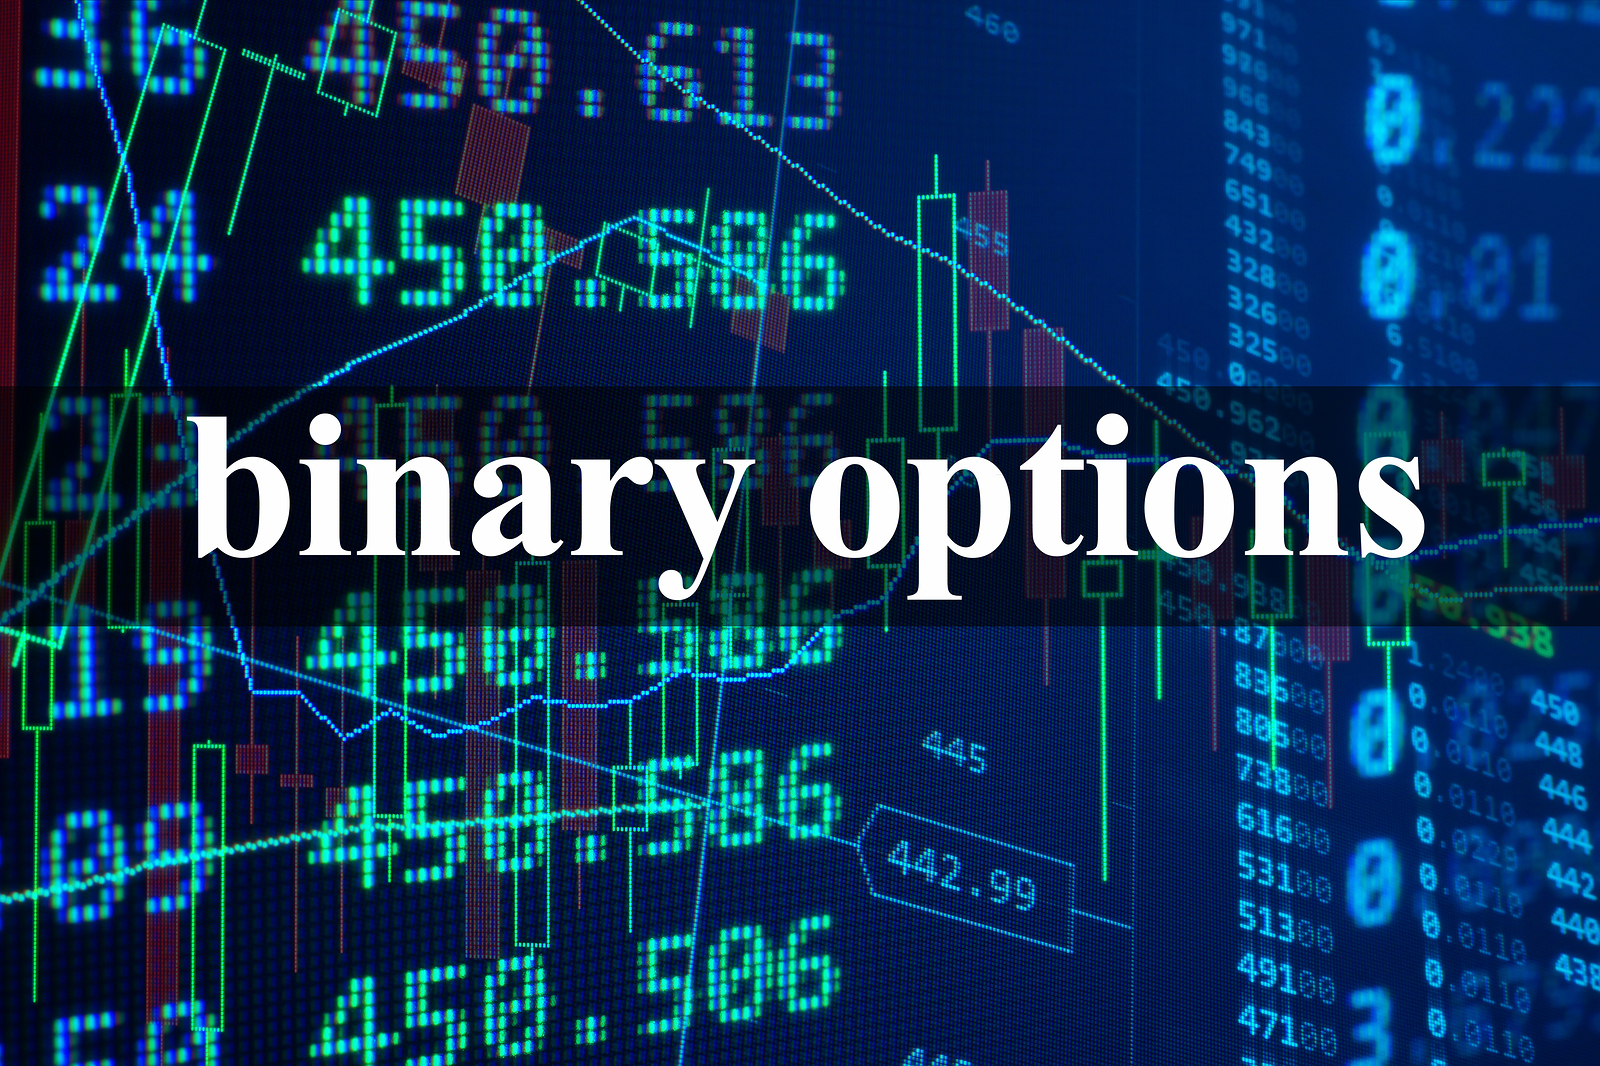 How to trade binary options in canada